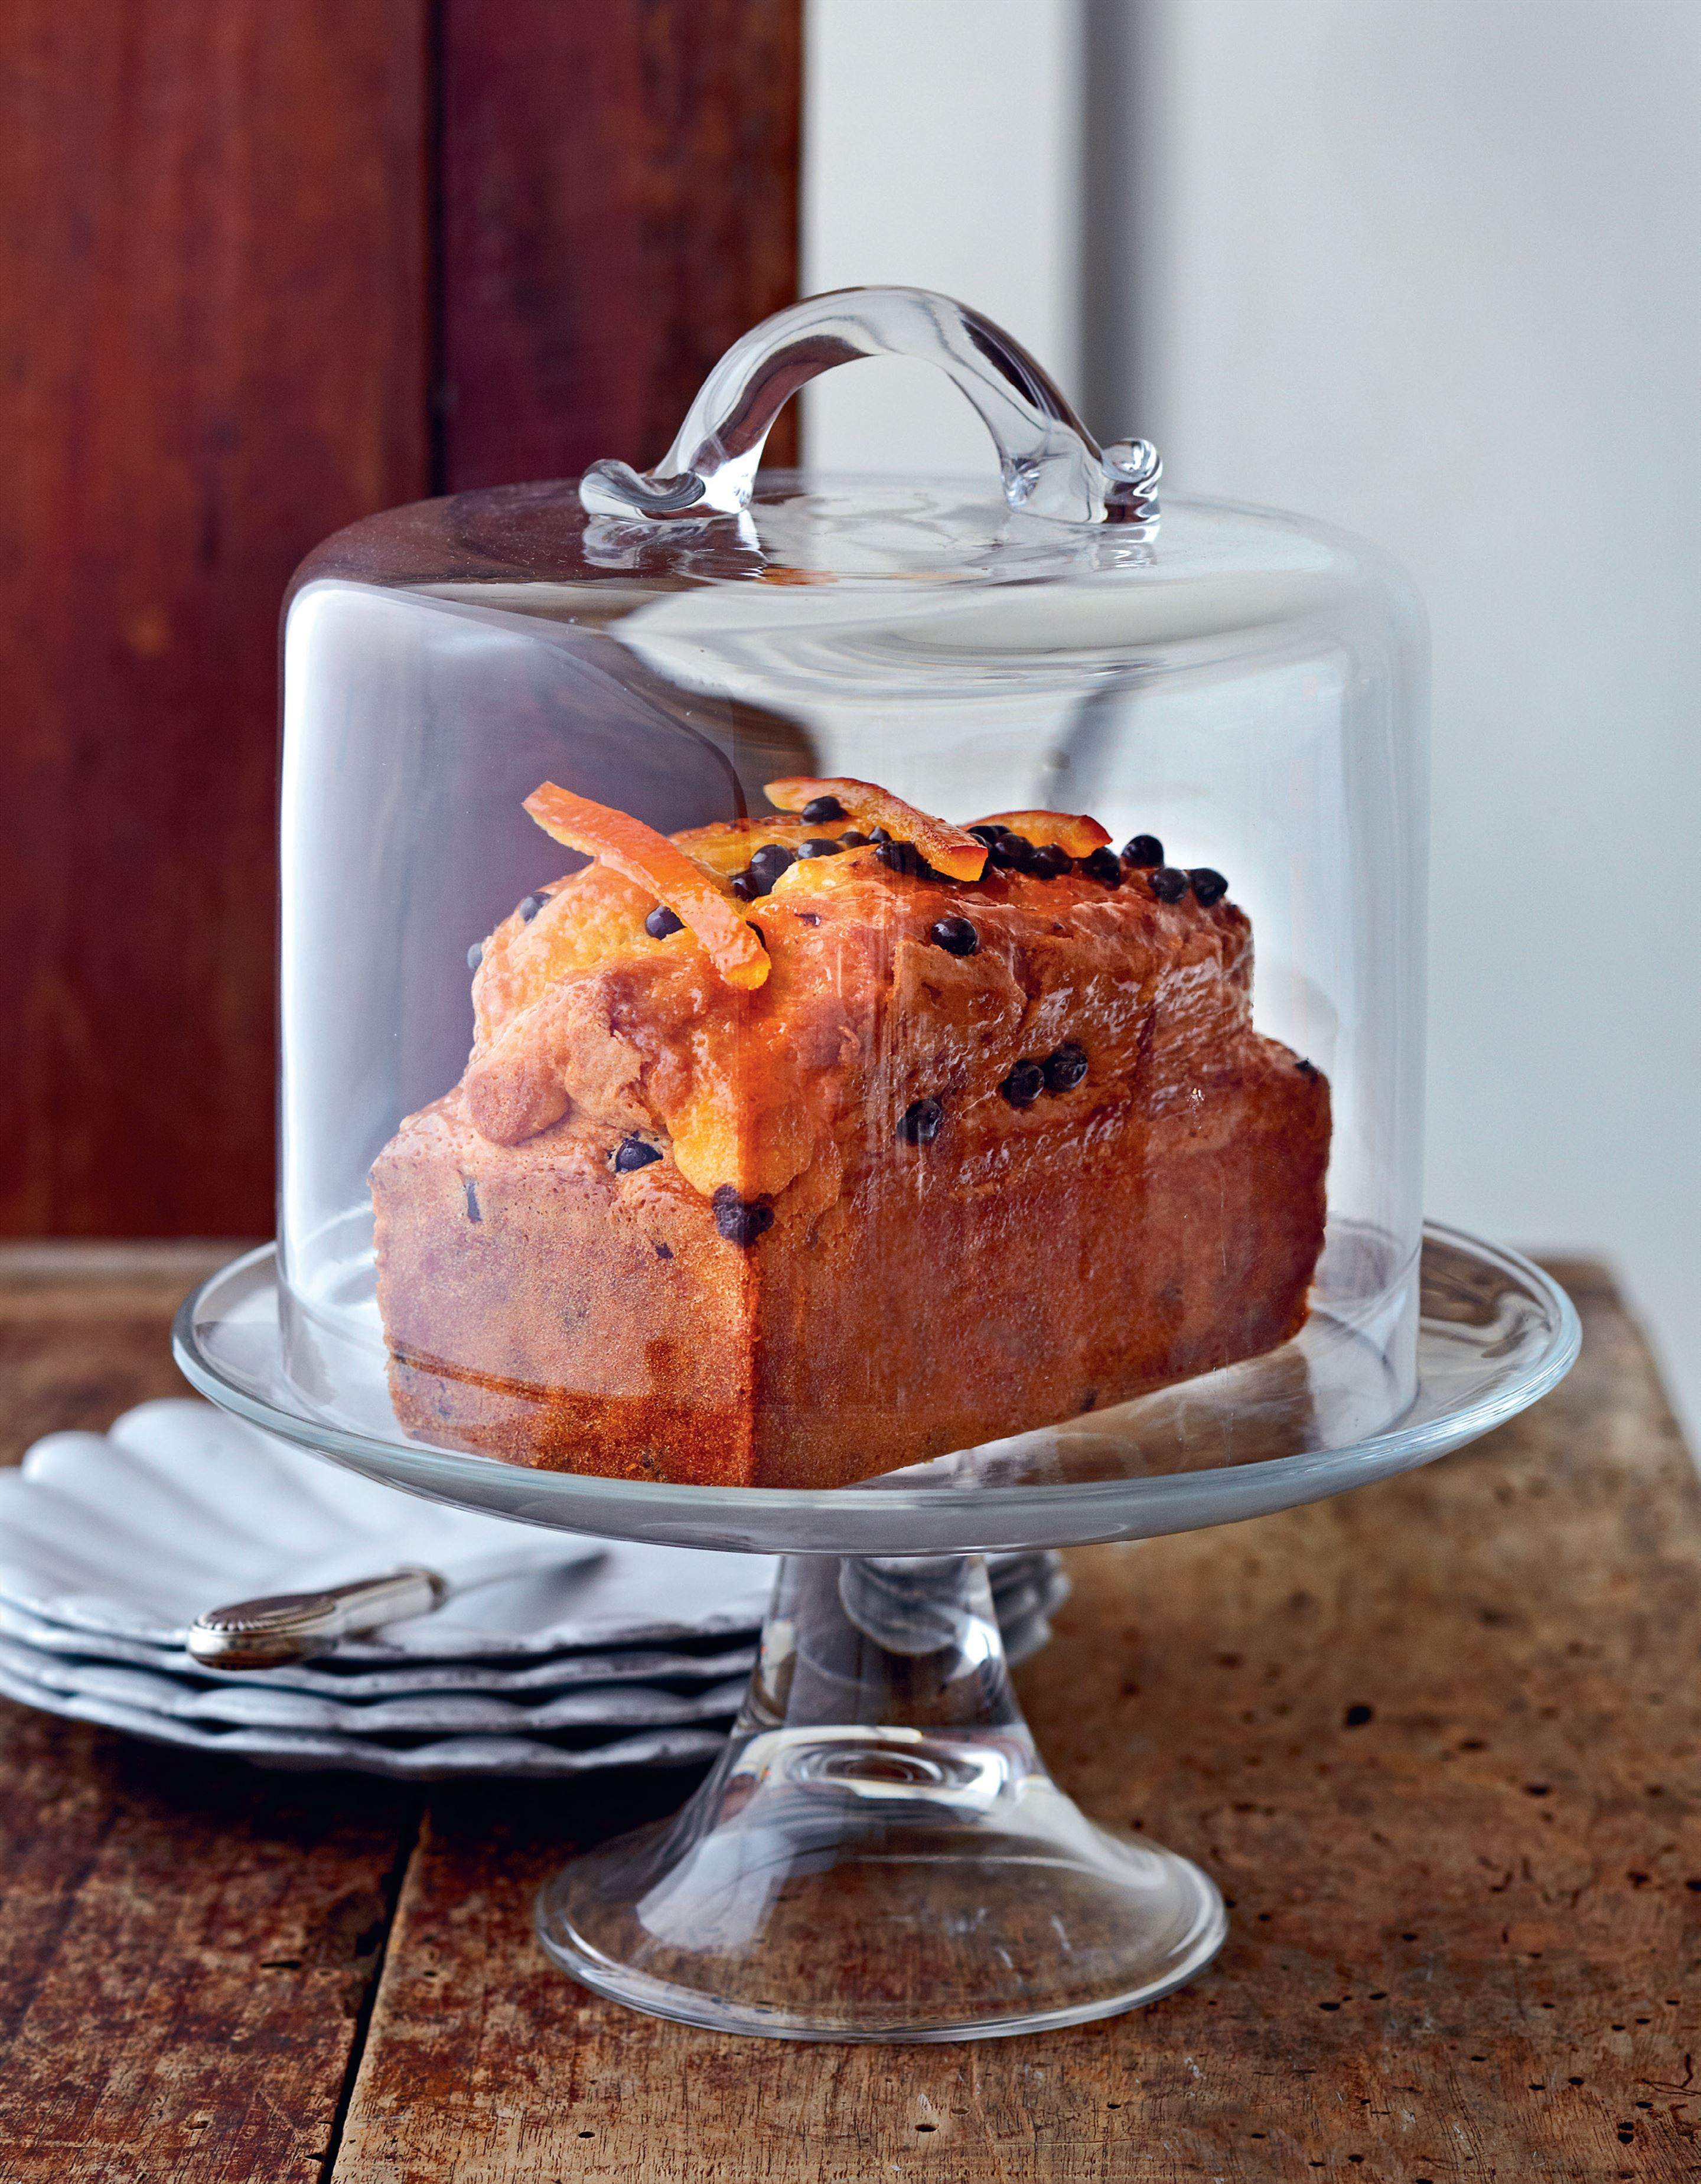 Orange–chocolate cake